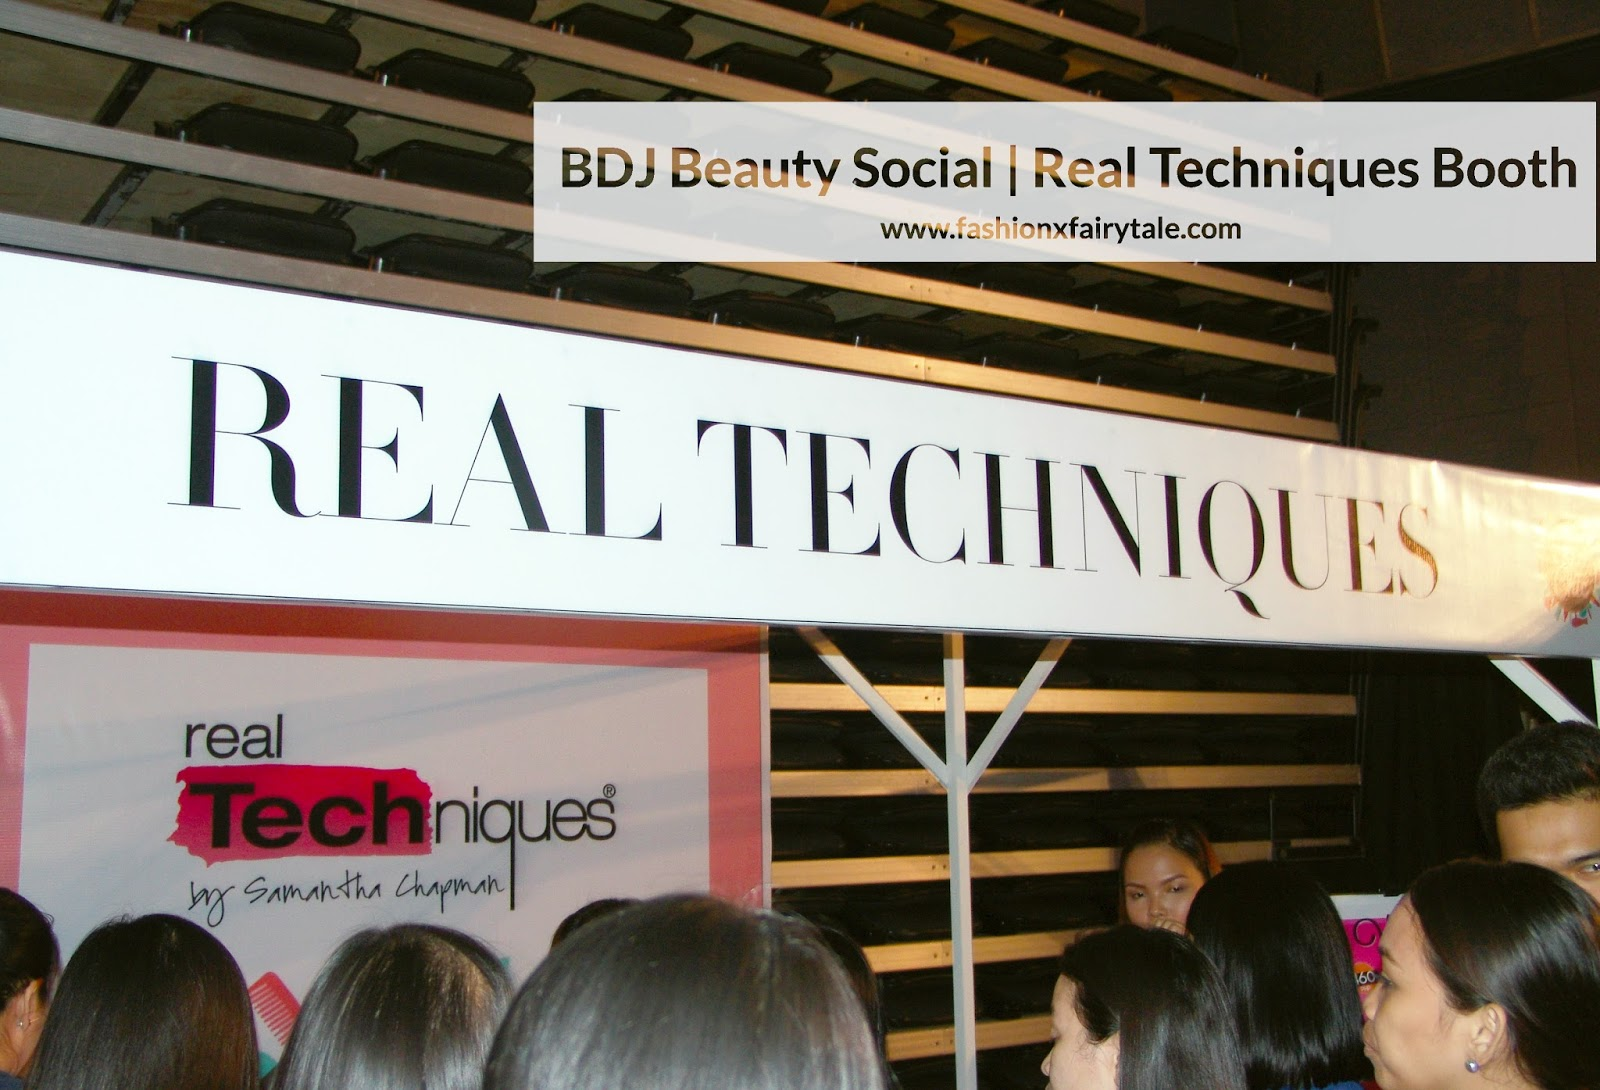 BDJ Beauty Social | Real Techniques & Ellana Minerals Booth